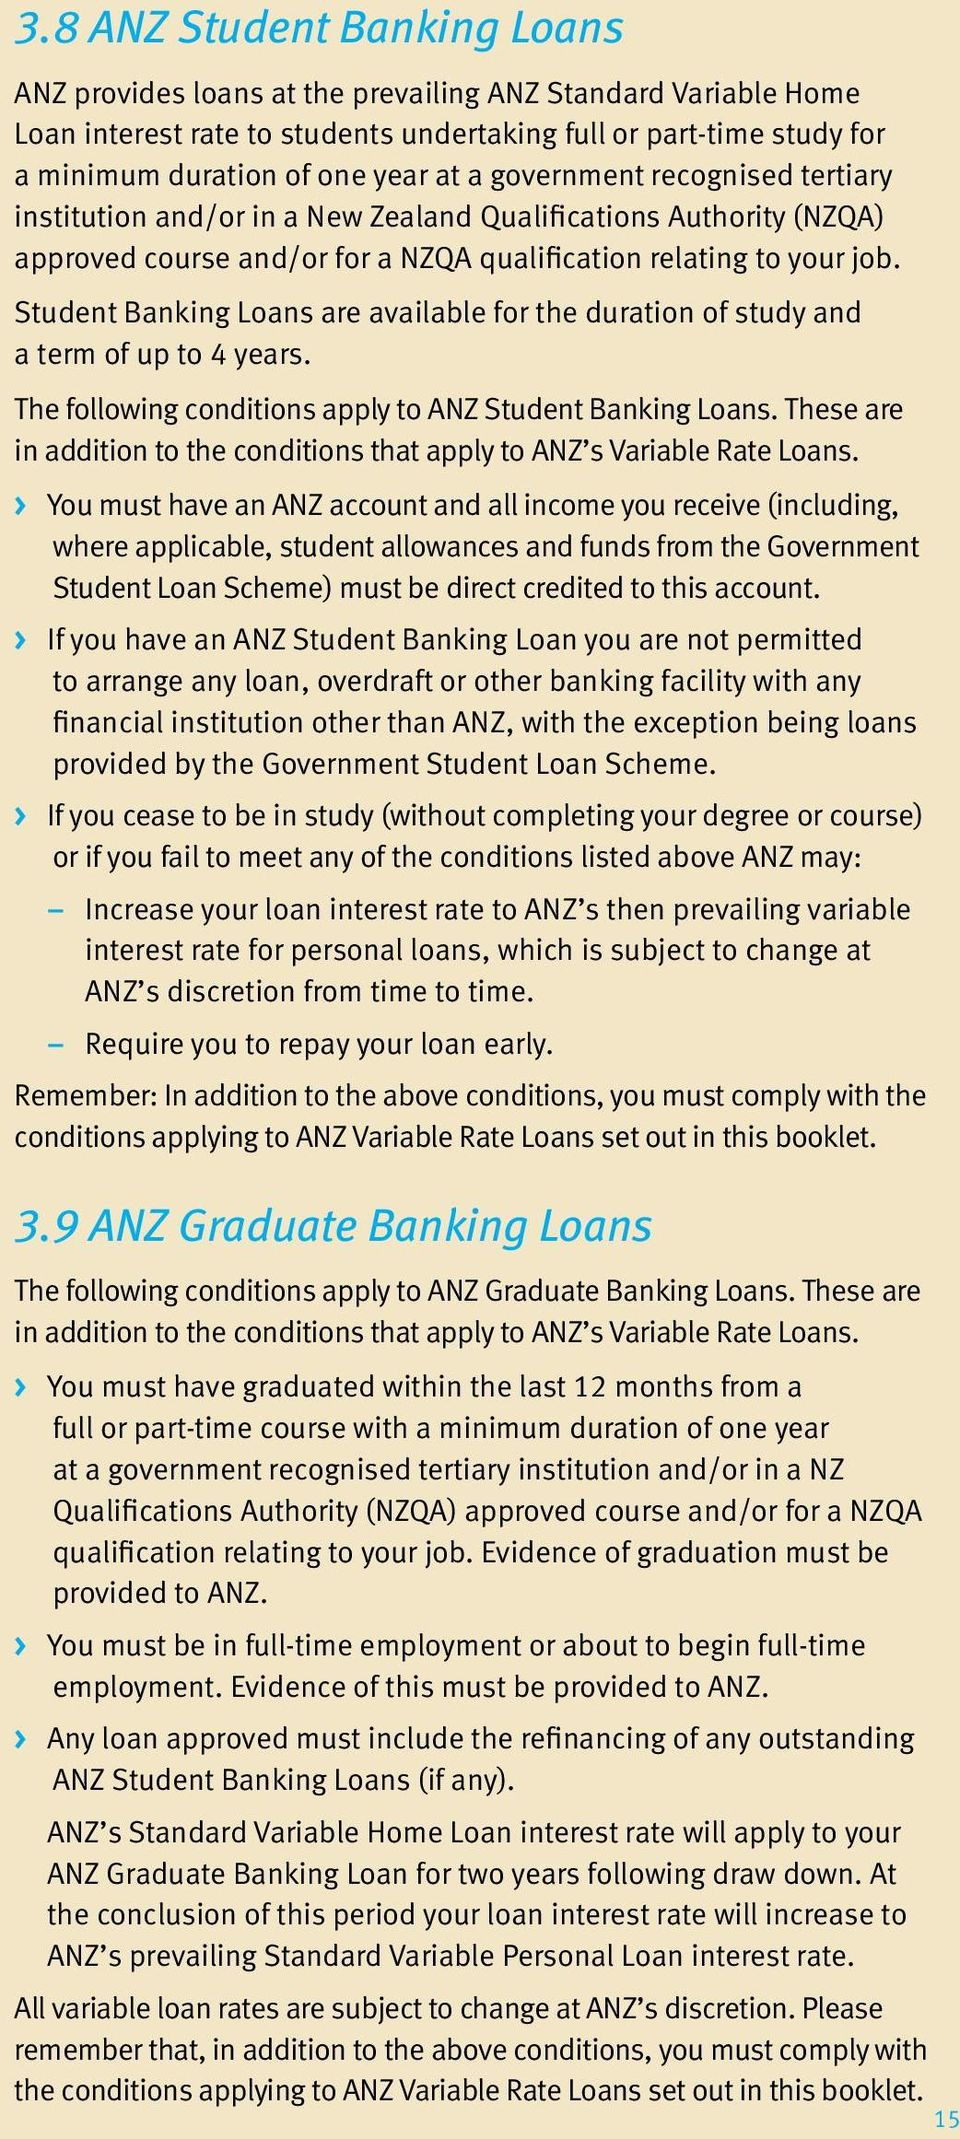 Student Banking Loans are available for the duration of study and a term of up to 4 years. The following conditions apply to ANZ Student Banking Loans.